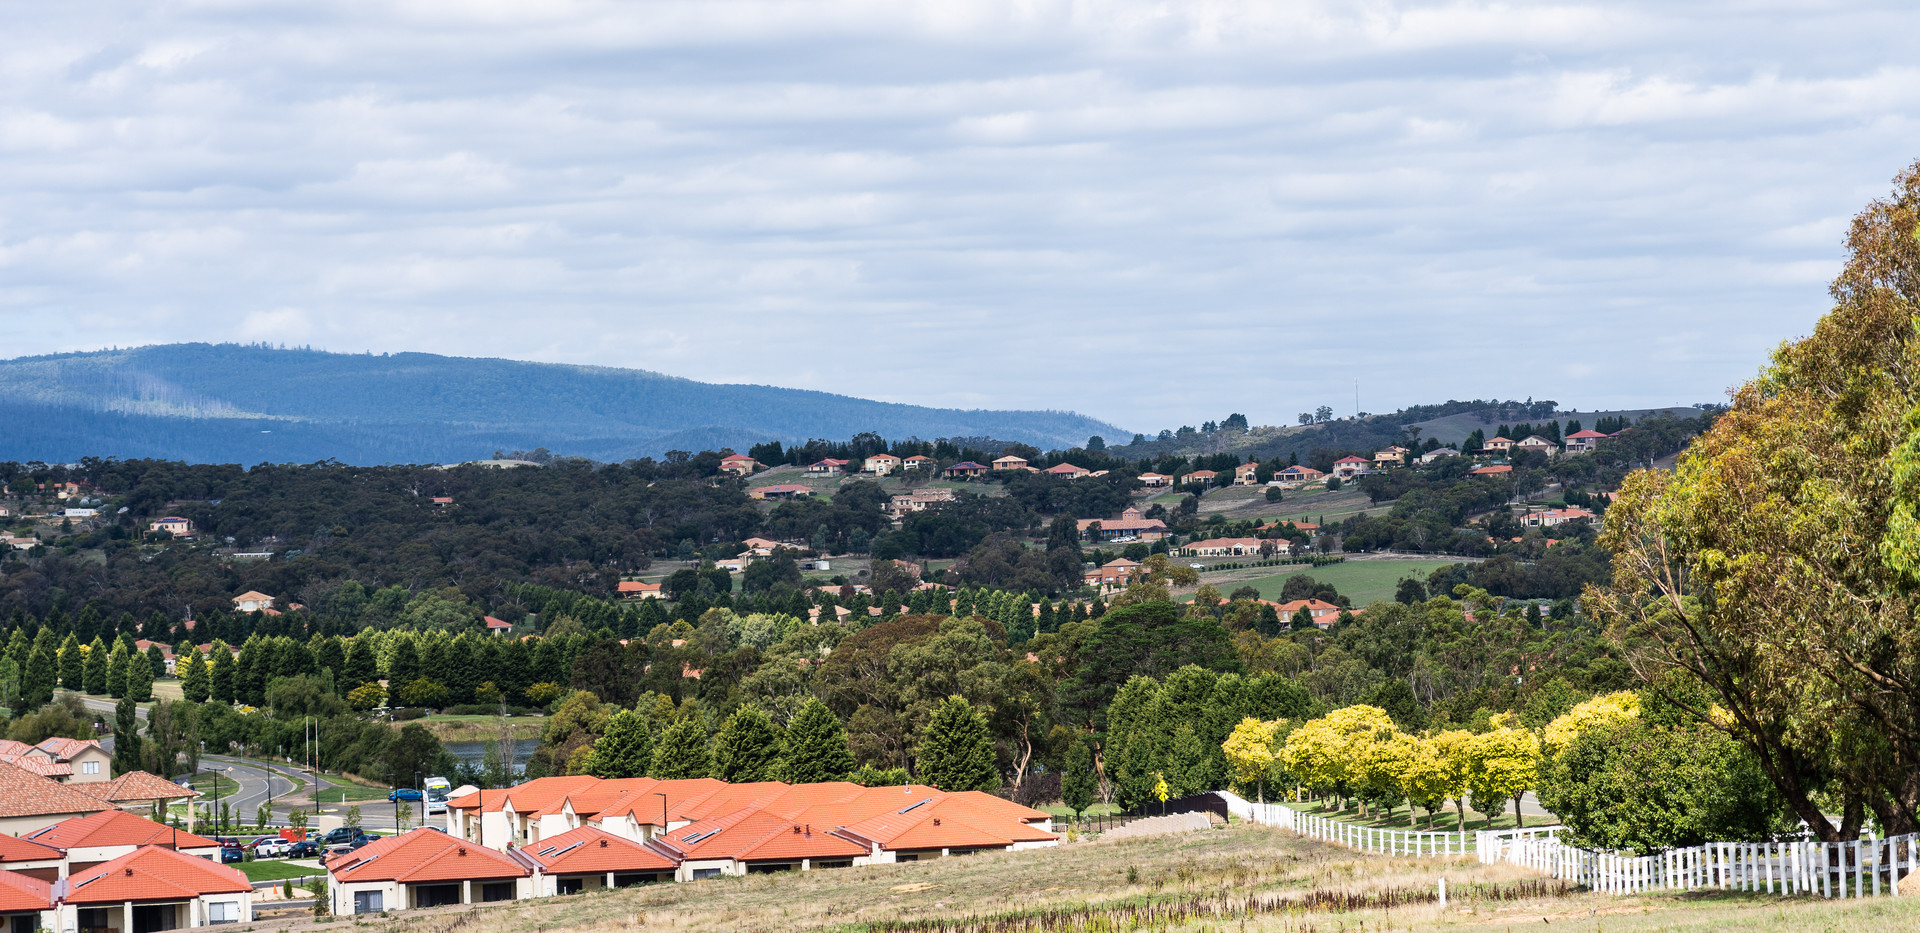 View over the Villas in Hidden Valley where La Dimora Retirement Village is located just 1 hour north of Melbourne